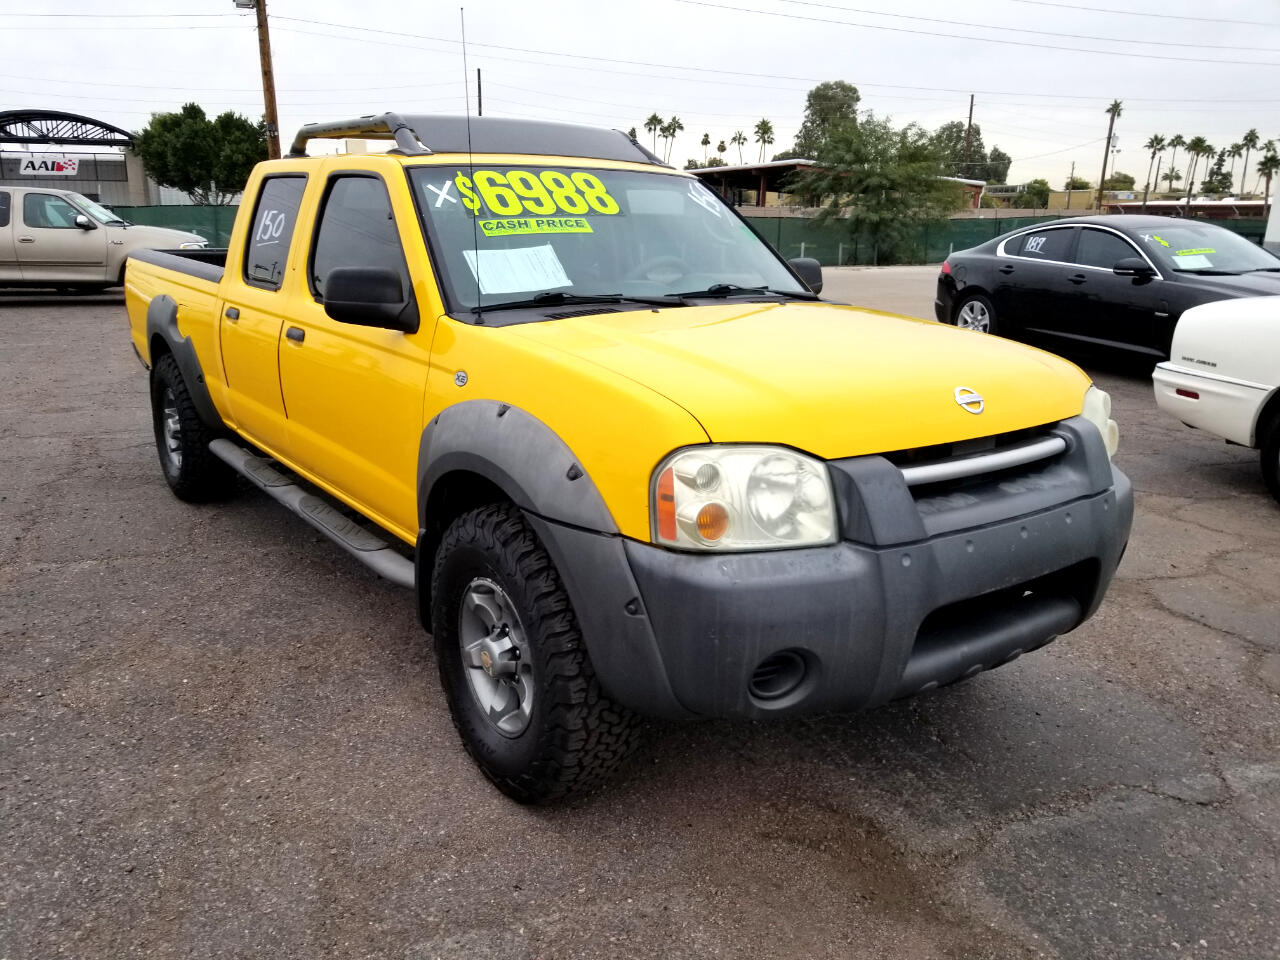 Nissan Frontier XE-V6 Crew Cab Long Bed 4WD 2002